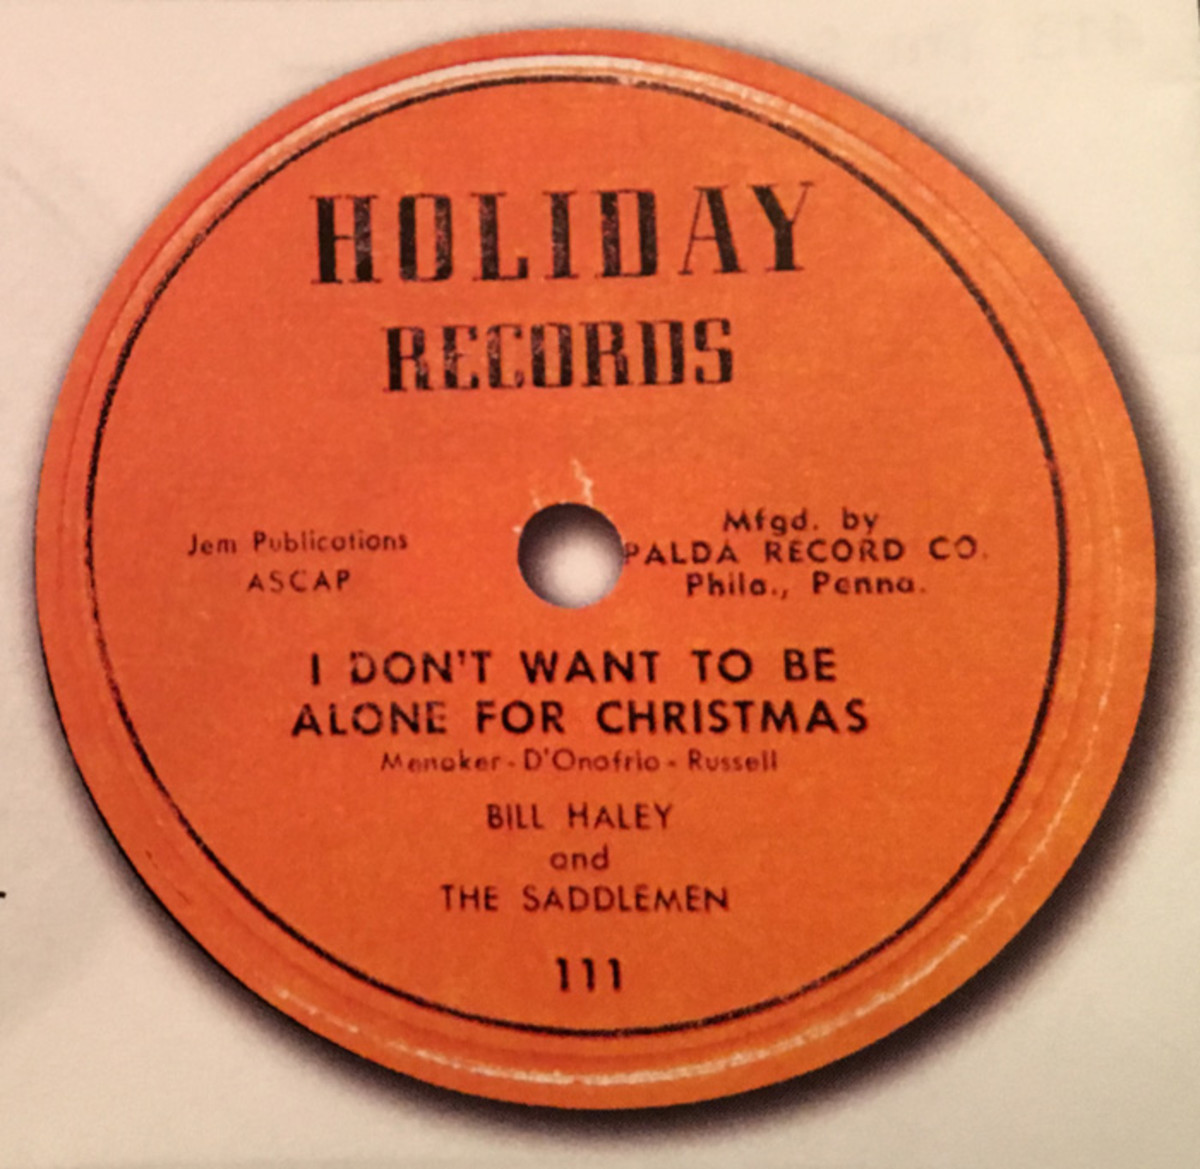 """""""I Don't Want To Be Alone For Christmas"""" 45 was released in December of 1954. Image courtesy of Tefteller's Rarest Records."""